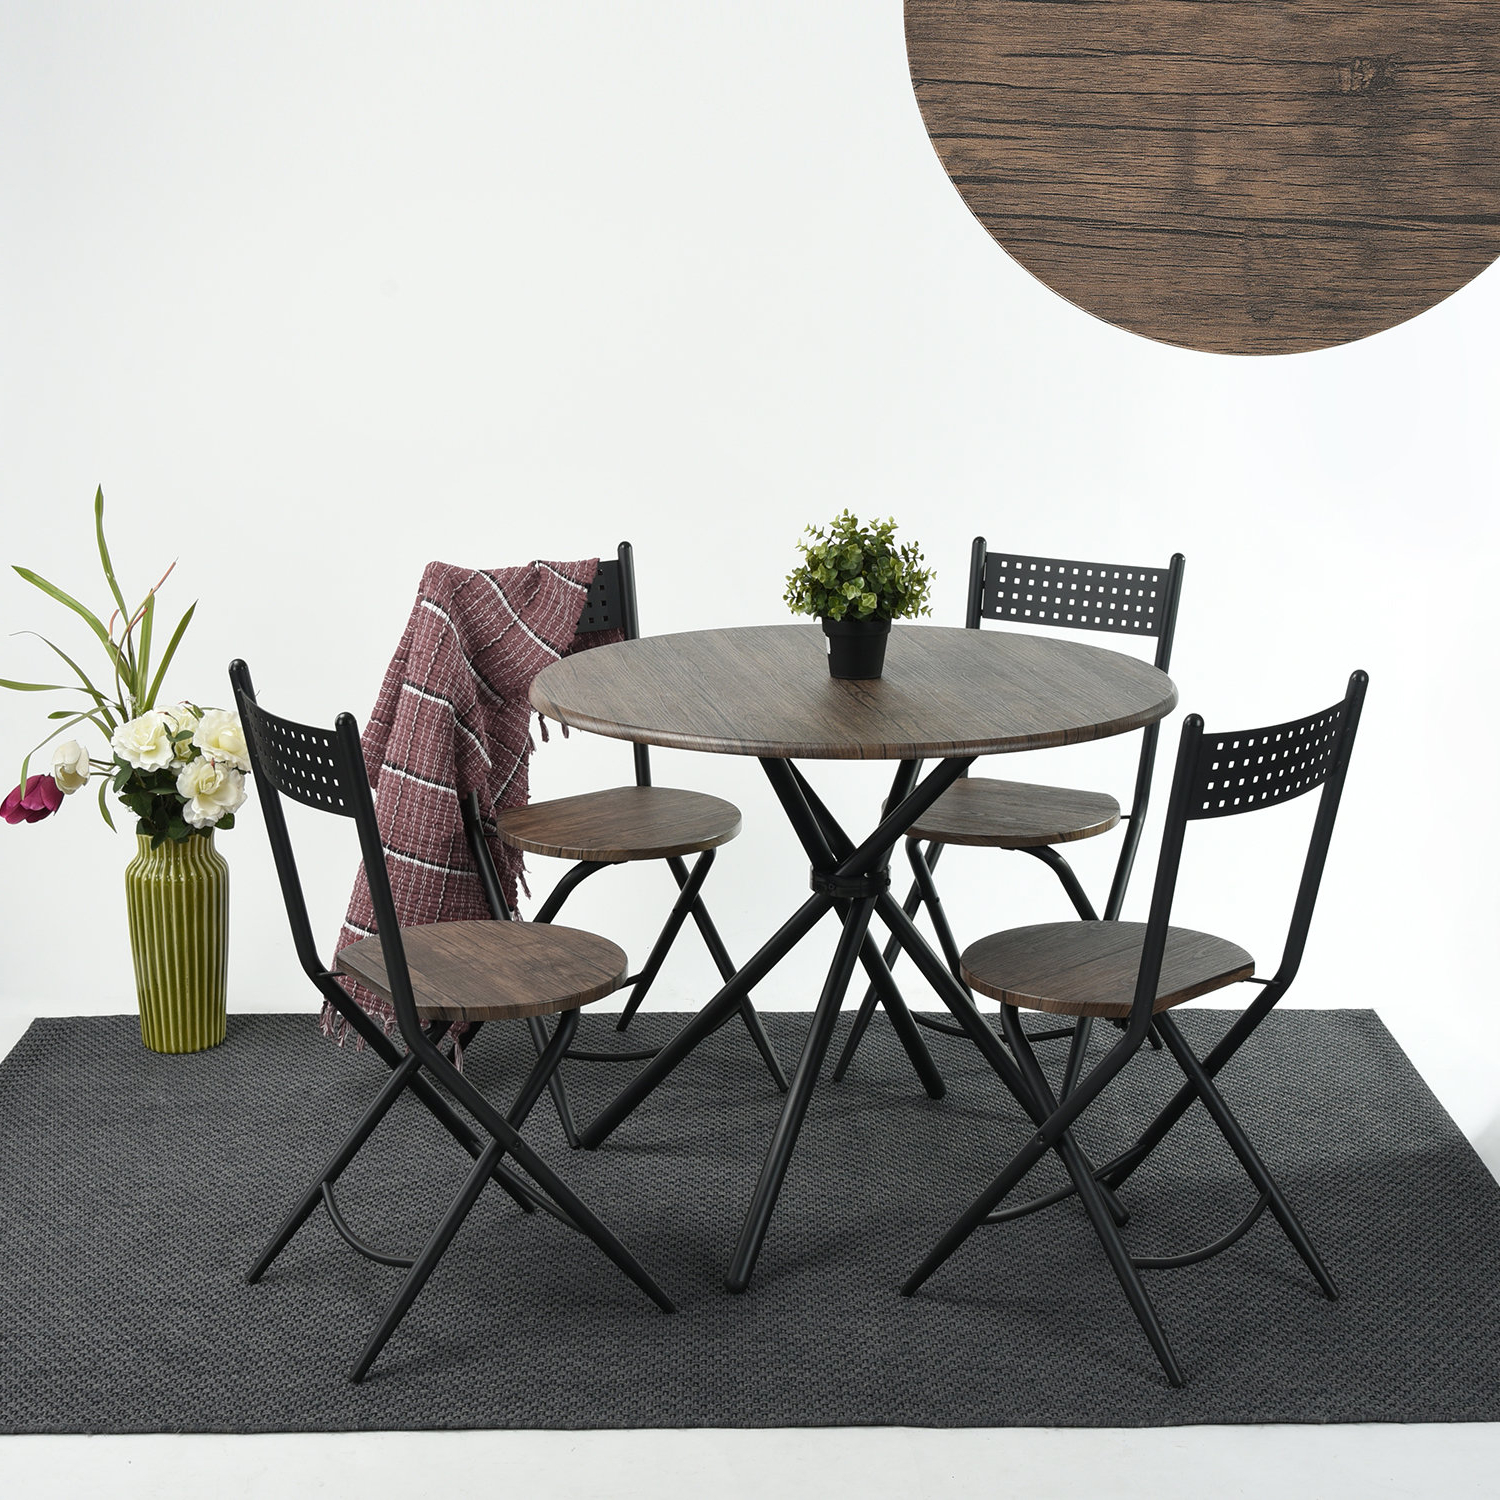 Rossi 5 Piece Dining Sets With Regard To Most Recently Released Wrought Studio Burdett 5 Piece Dining Set (View 4 of 20)